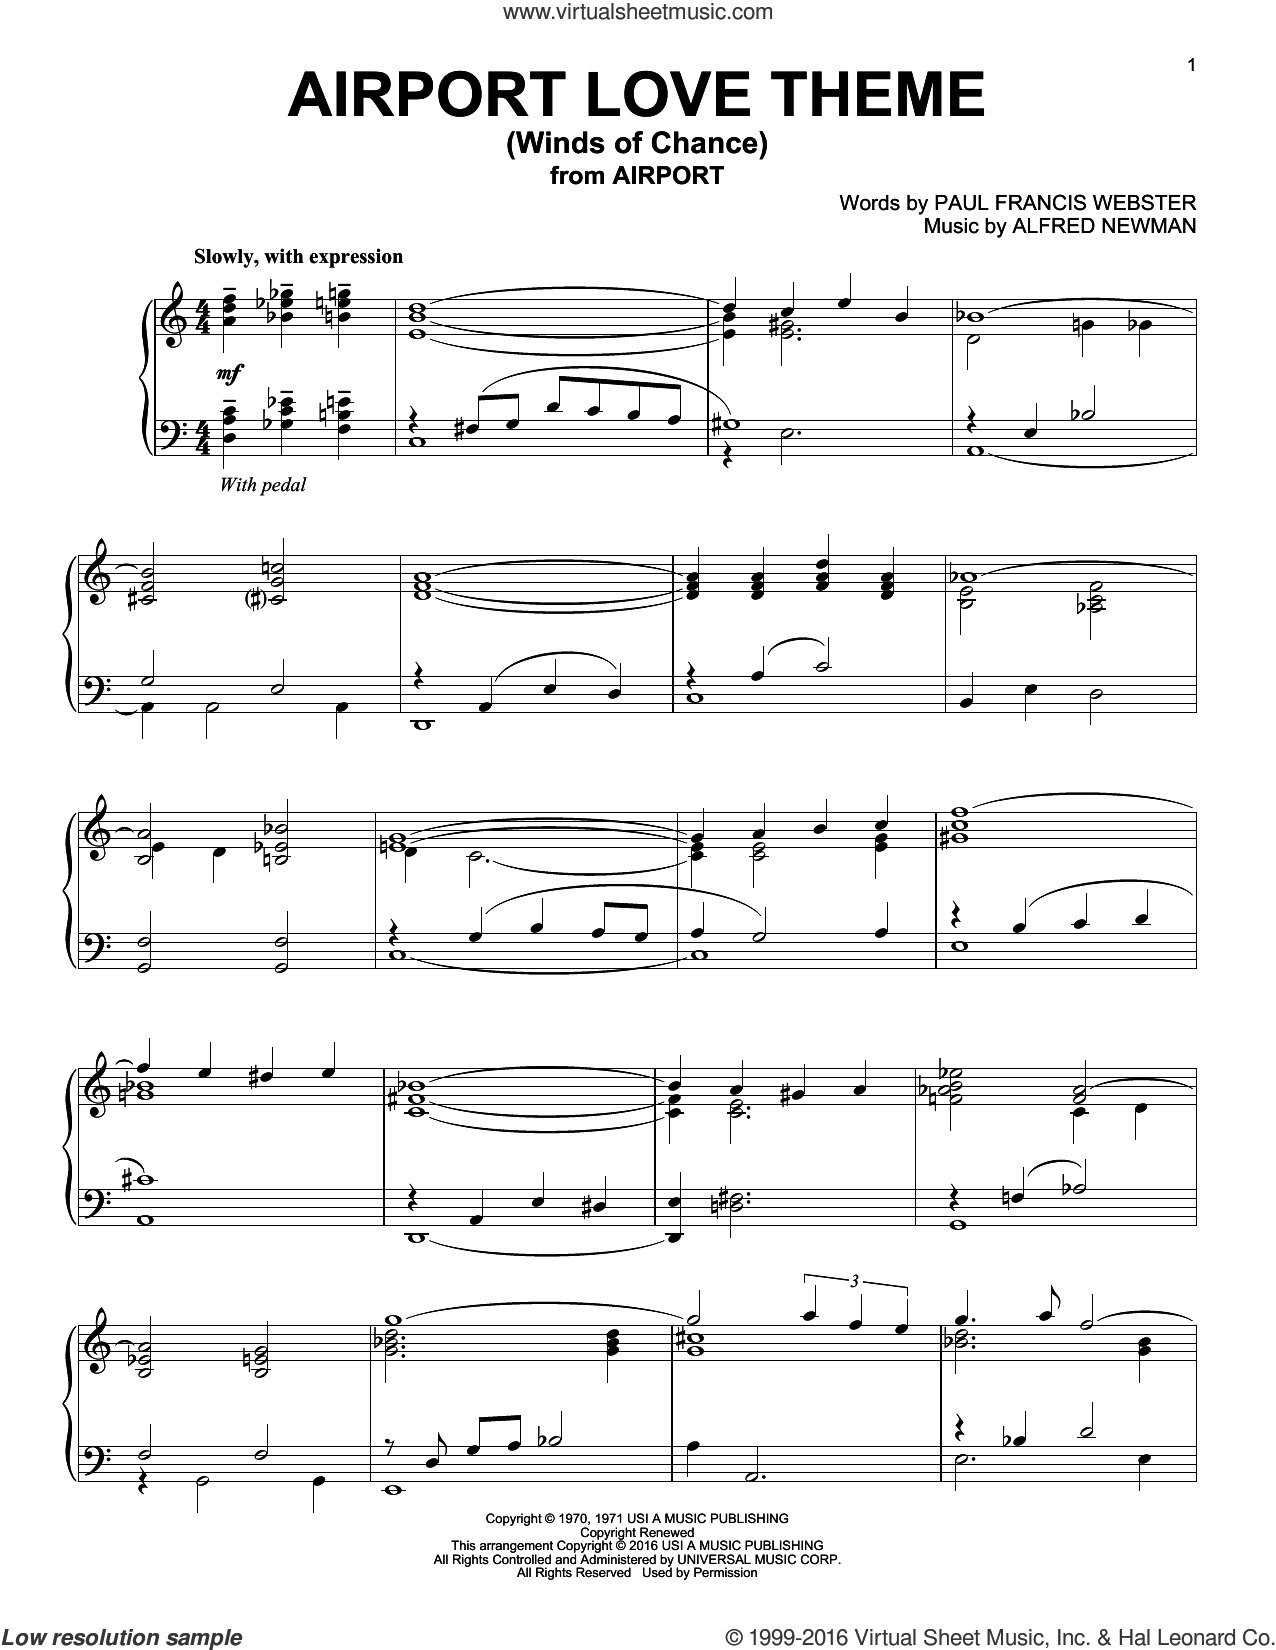 Airport Love Theme (Winds Of Chance) sheet music for piano solo by Vincent Bell, Alfred Newman and Paul Francis Webster, intermediate skill level